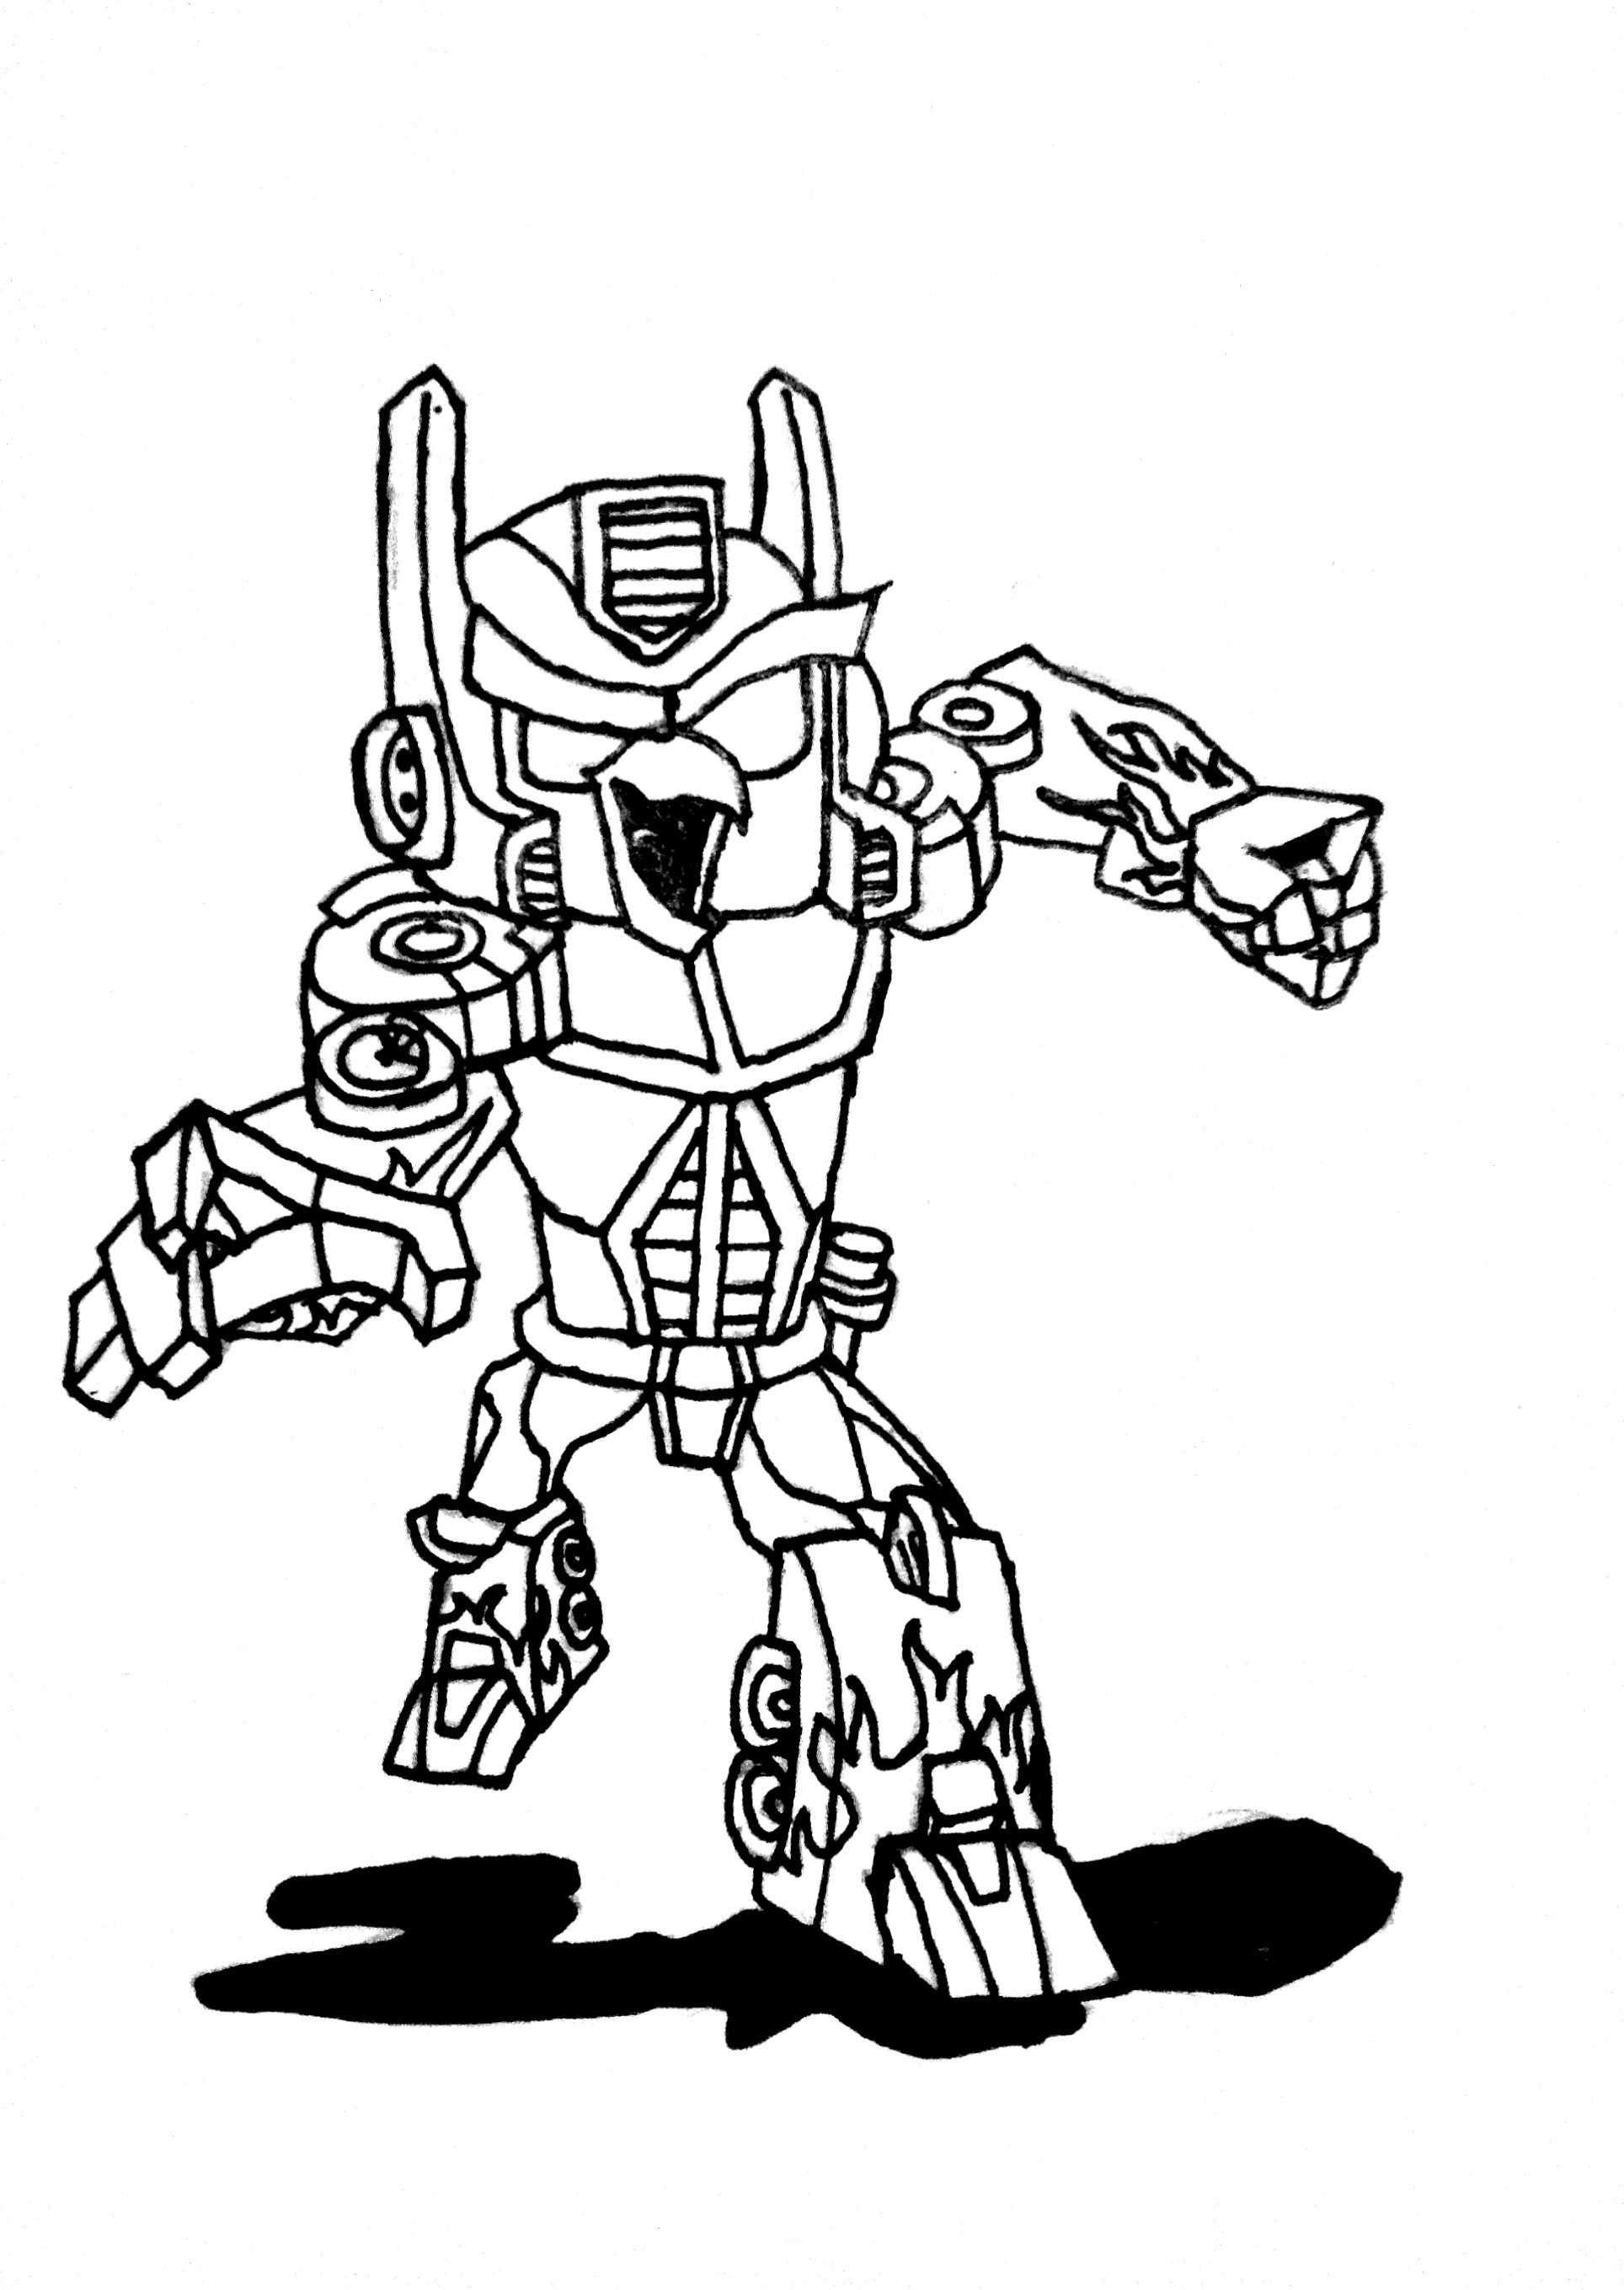 Lego Transformers Coloring Pages At Getdrawings Com Free